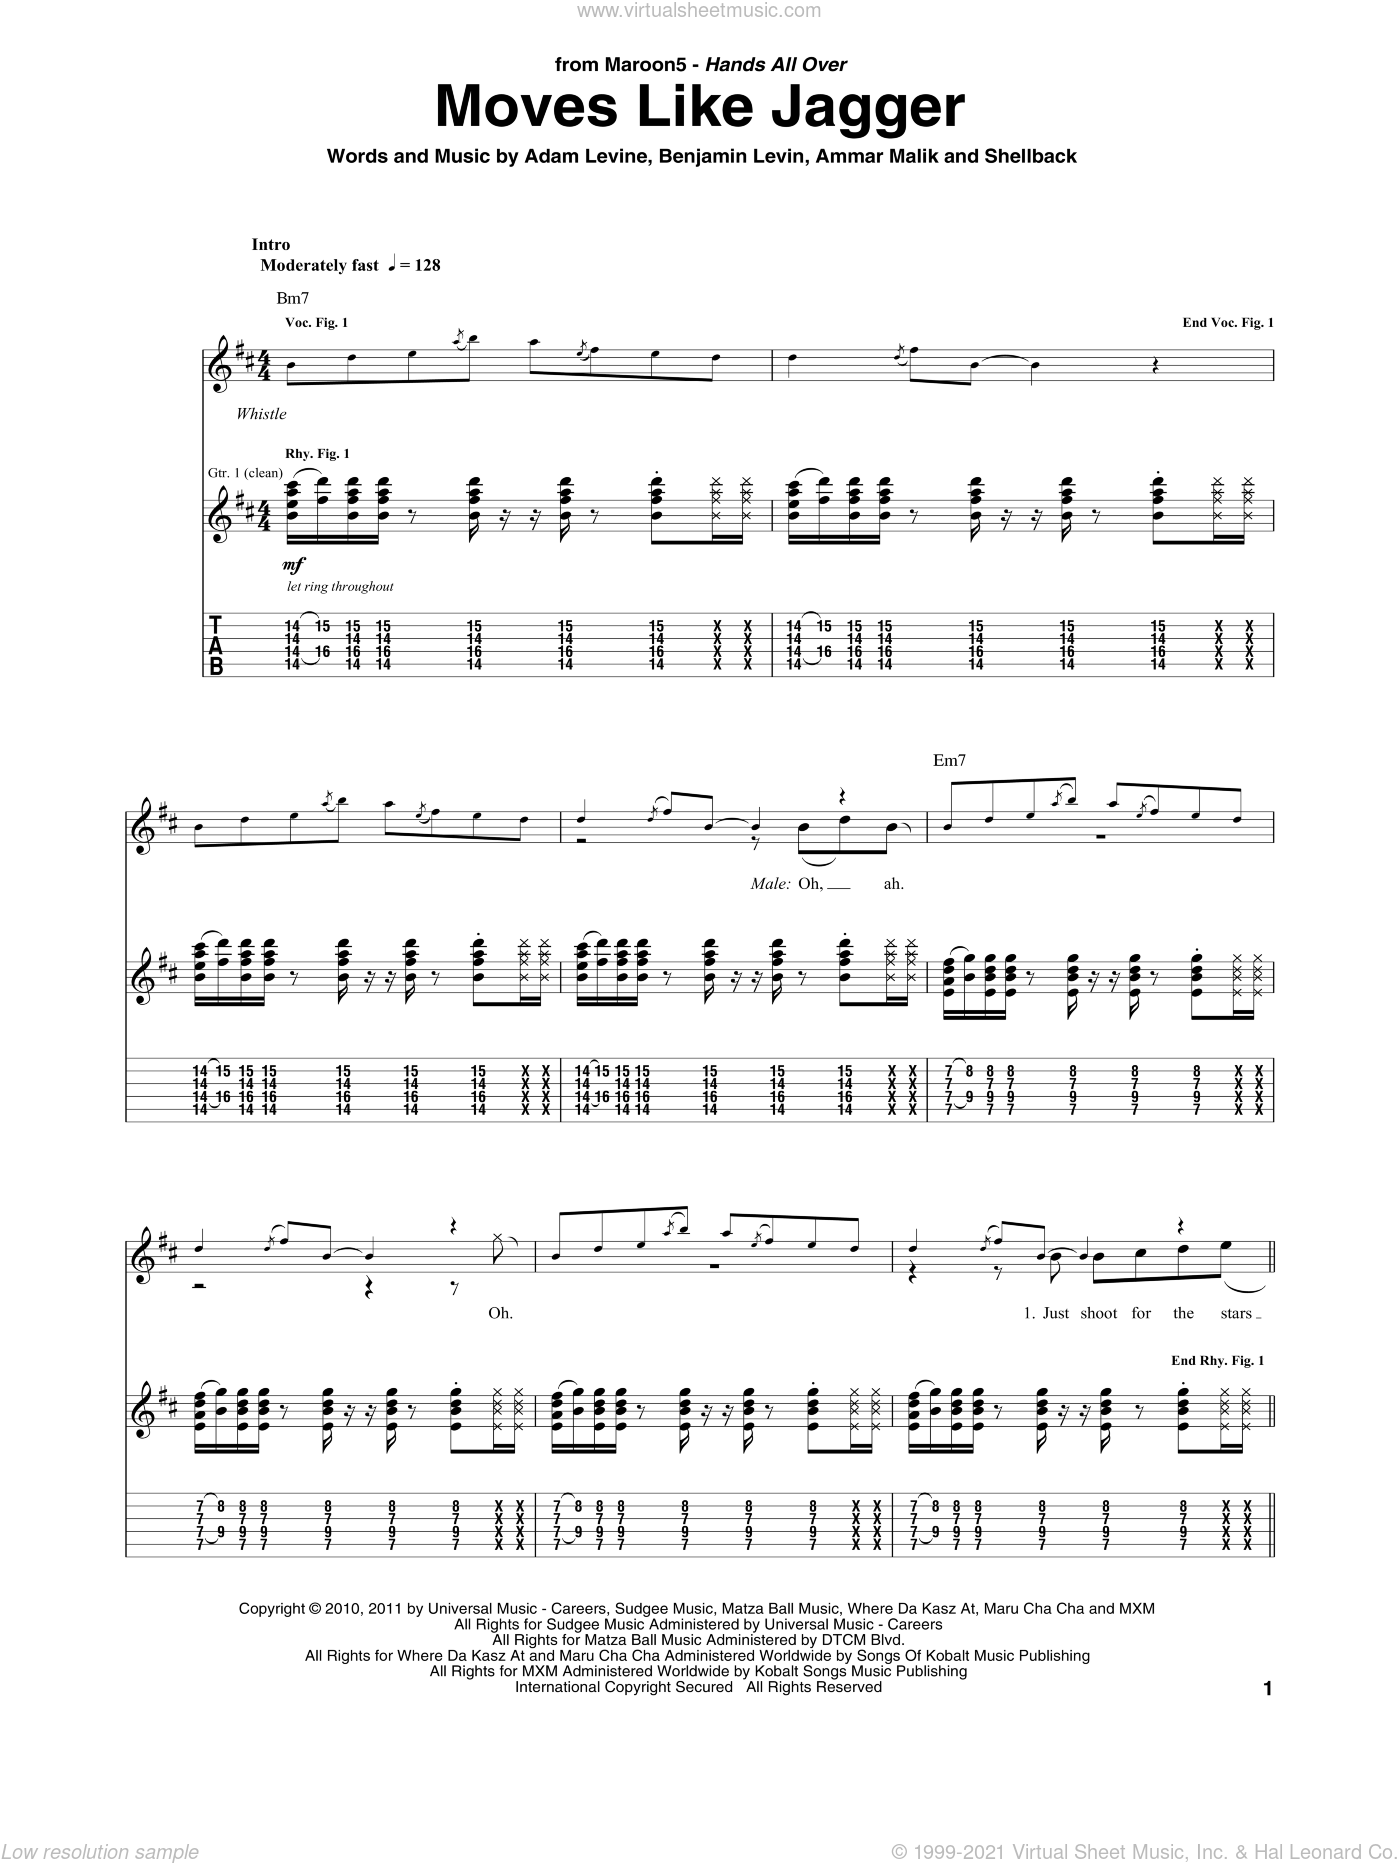 Moves Like Jagger sheet music for guitar (tablature) by Maroon 5 featuring Christina Aguilera, Christina Aguilera, Maroon 5, Adam Levine, Ammar Malk, Benjamin Levin and Johan Schuster, intermediate skill level